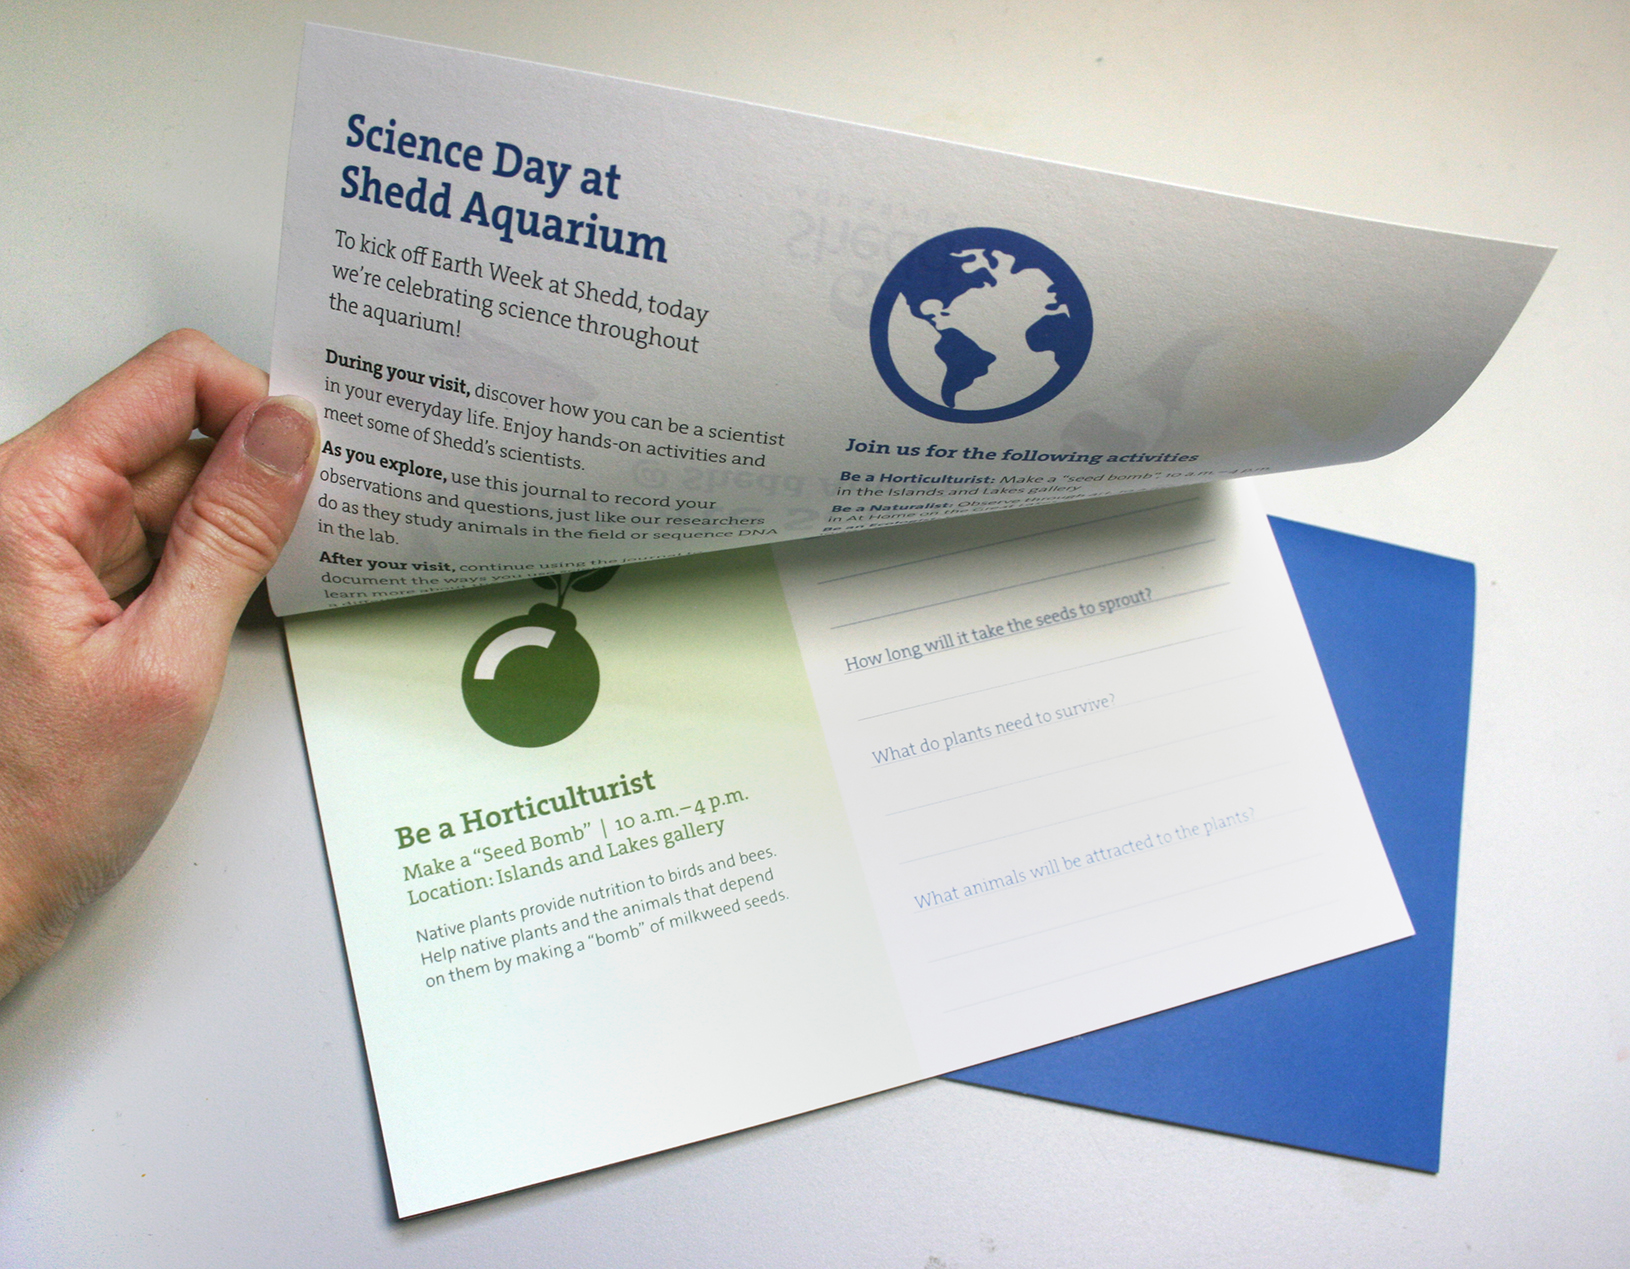 An activity book that opens top-to-bottom. The top page reads 'Science Day at Shedd Aquarium' and contains information about activities available, and the bottom page shows an icon on a green background and information about a specific activity as well as some questions for a participant to answer.